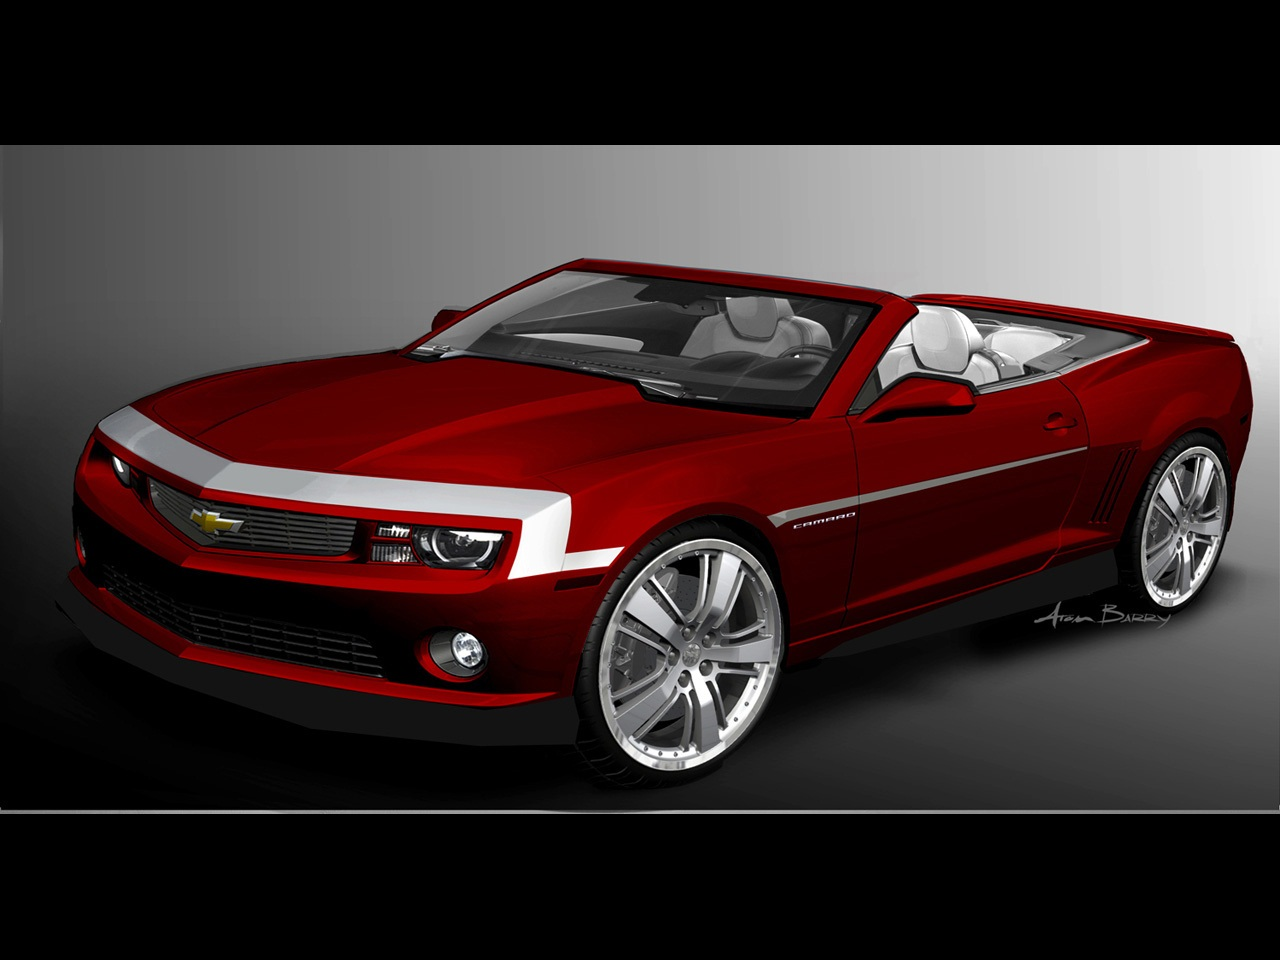 2018 Chevrolet Camaro Red Flash Concept photo - 5